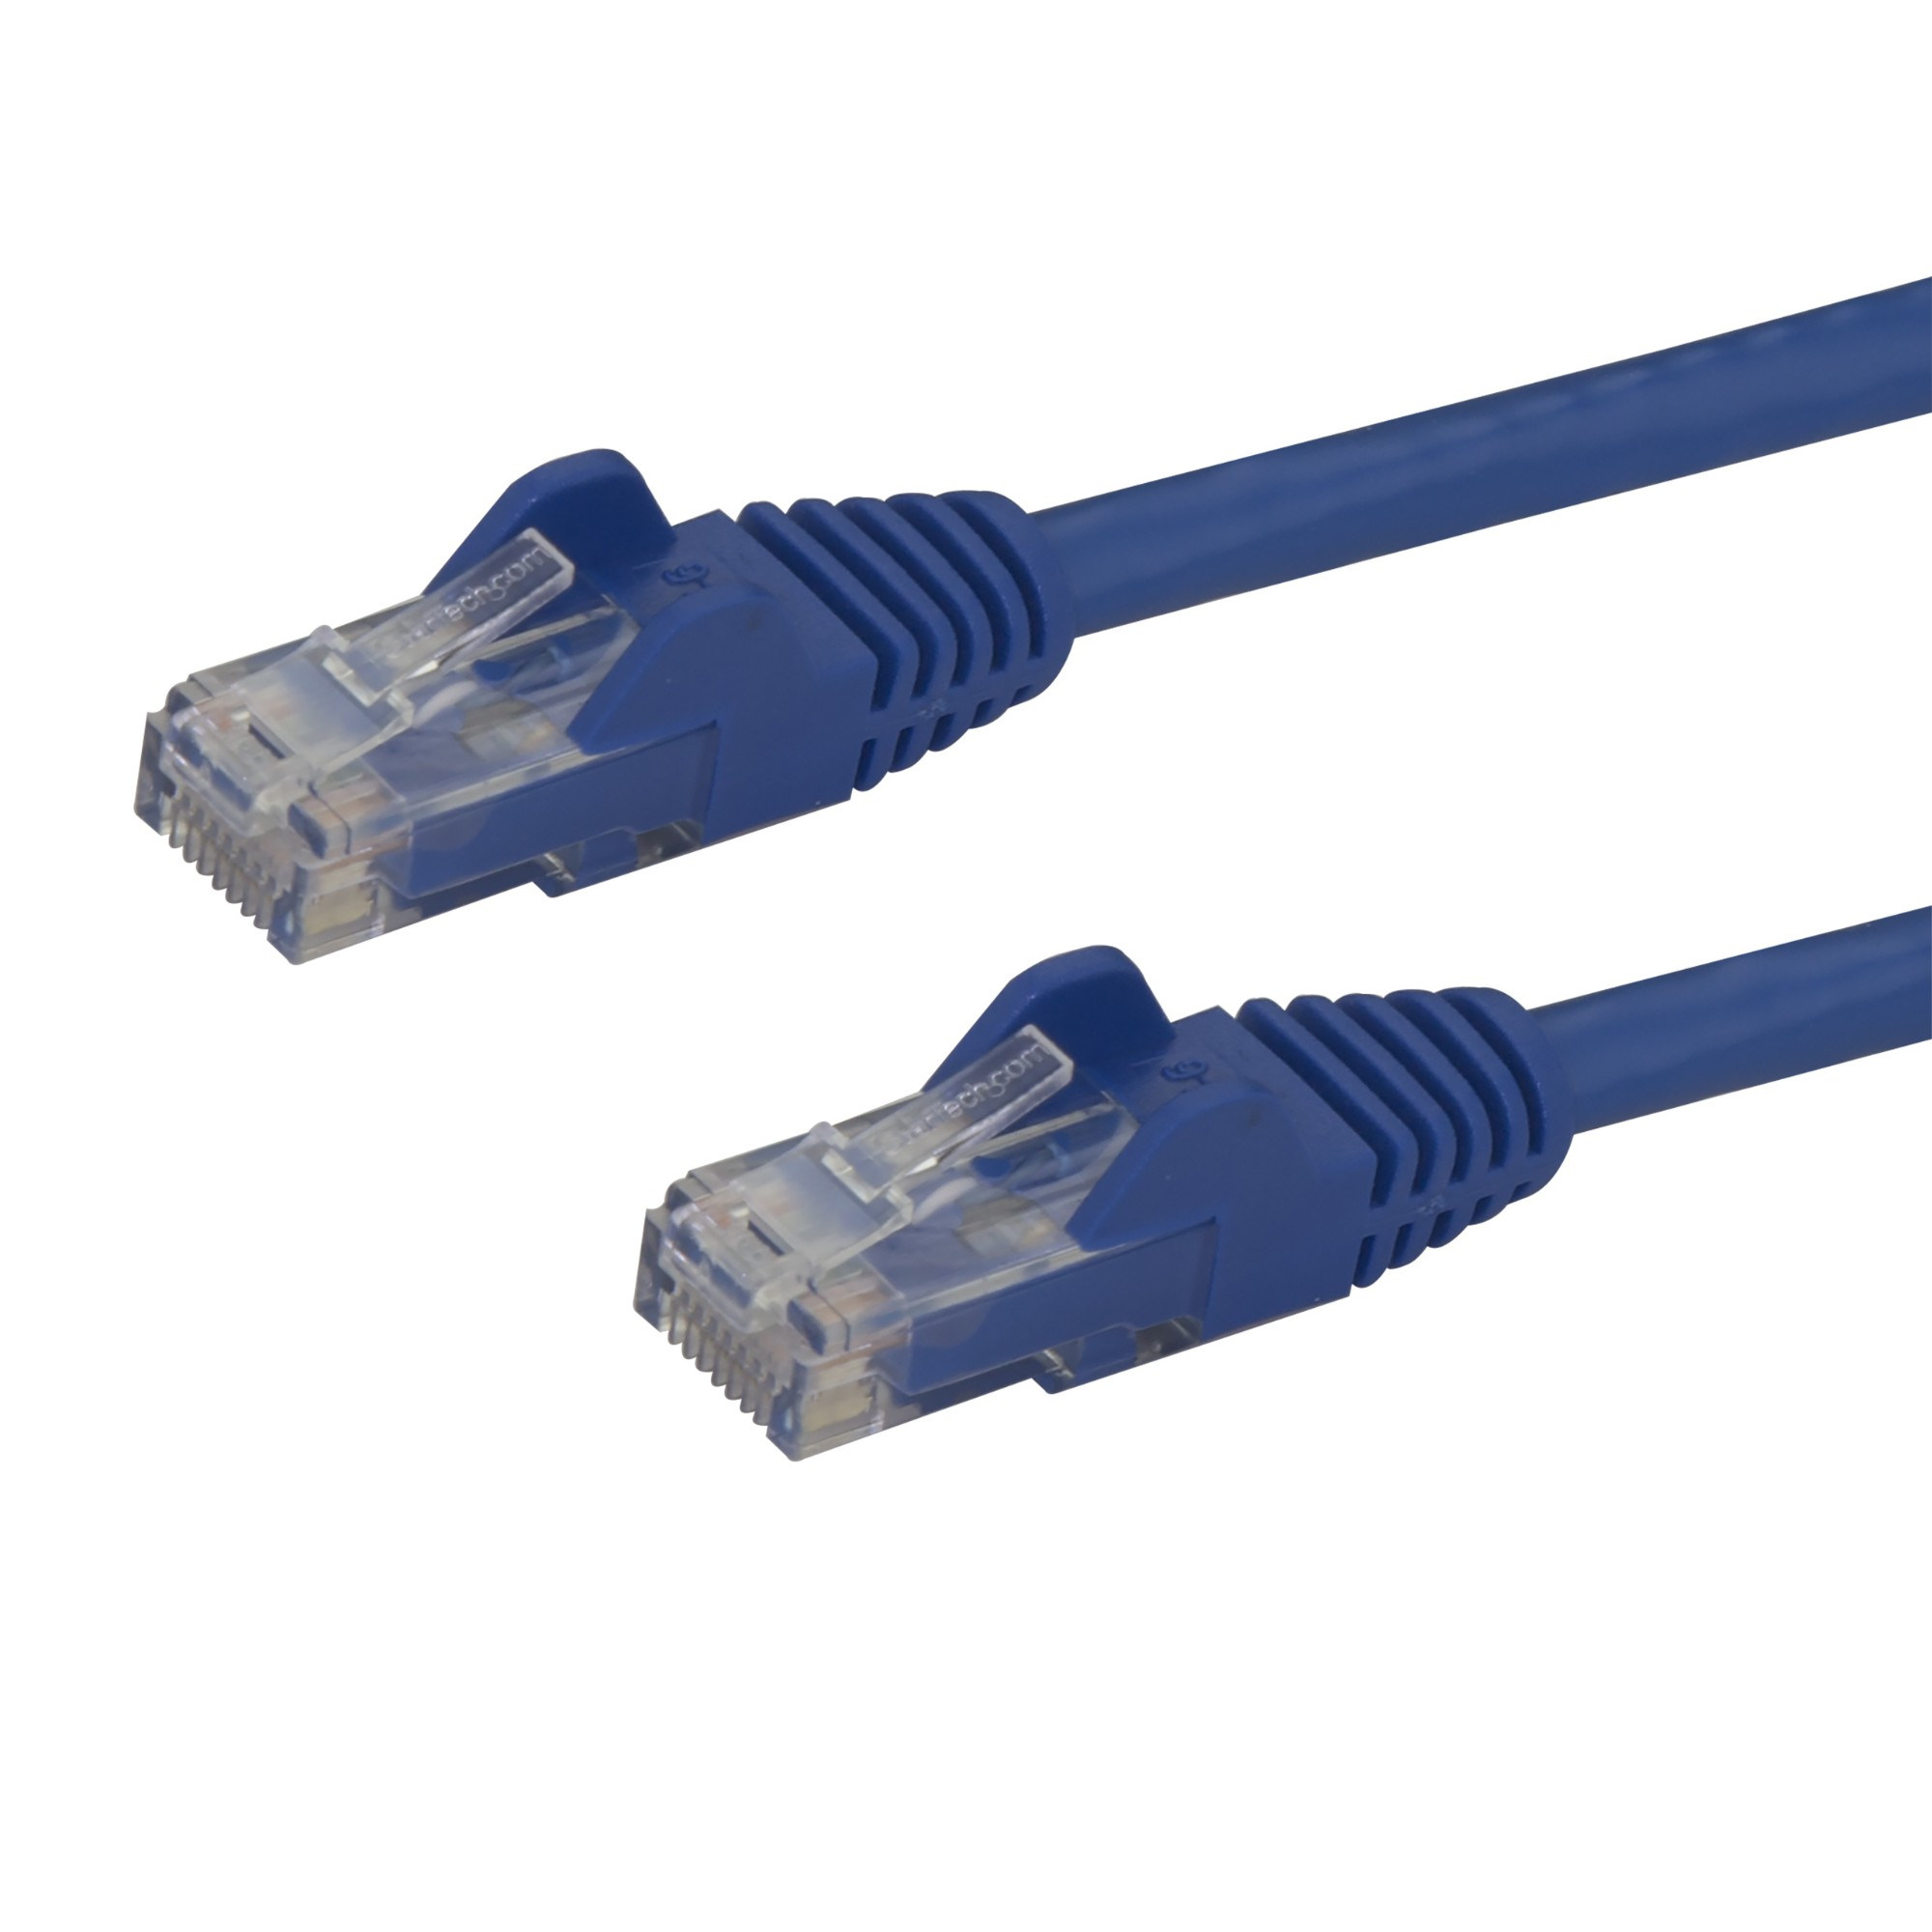 StarTech.com Cable de Red Ethernet Snagless Sin Enganches Cat 6 Cat6 Gigabit 2m - Azul